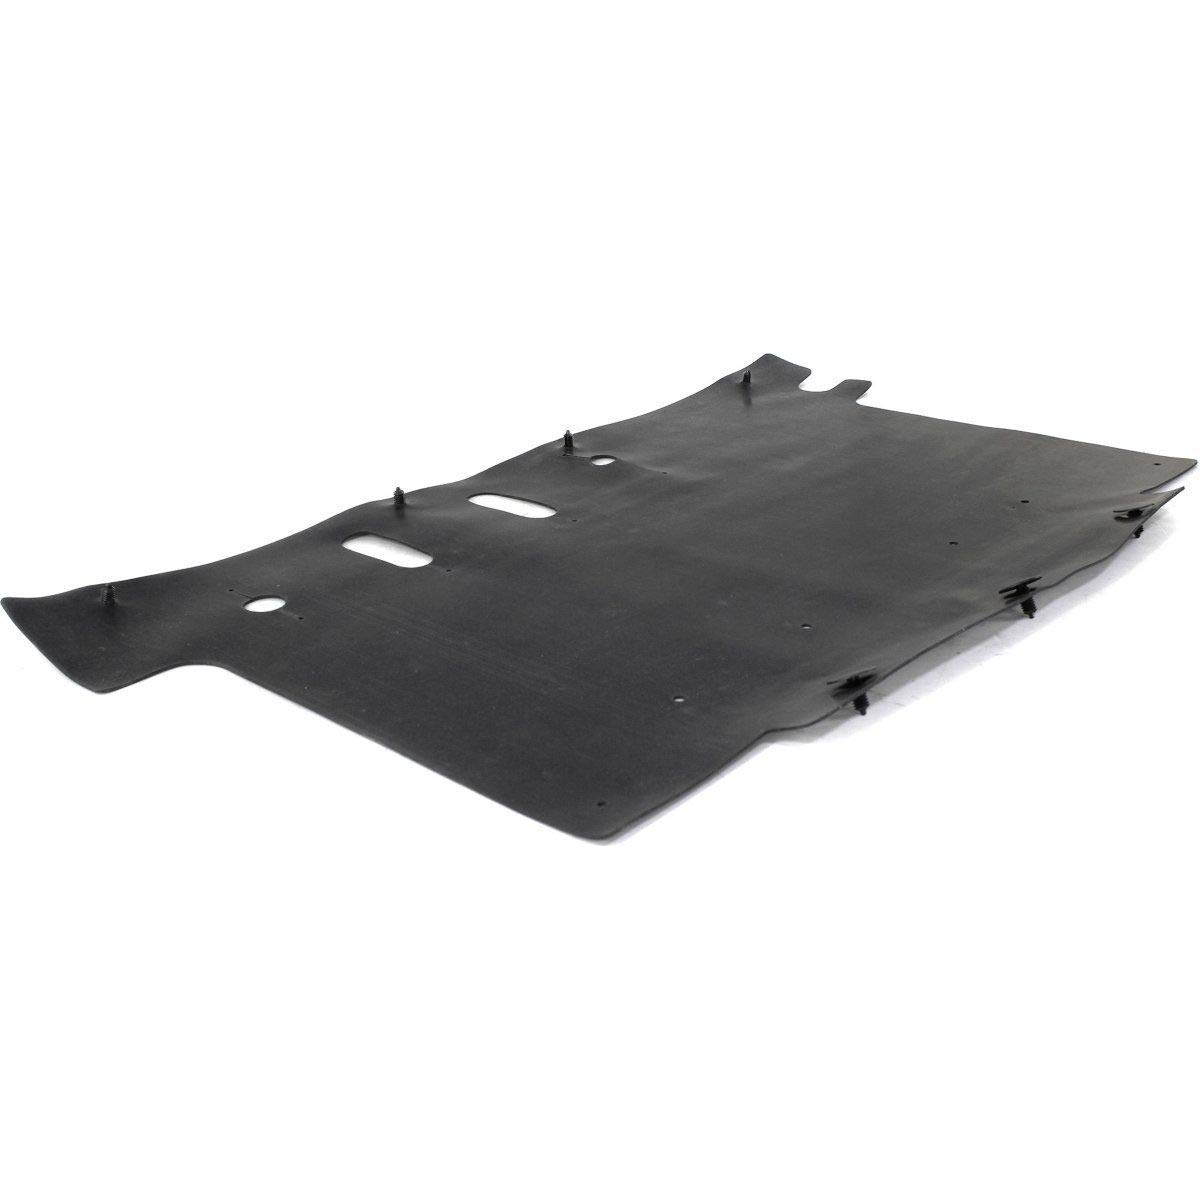 Air Deflector All Cab Types Fitrite Autoparts New Engine Splash Shield for 2011-2014 Ford F-150 Under Cover Front Kansas City Plant FO1218116 BL3Z8327B